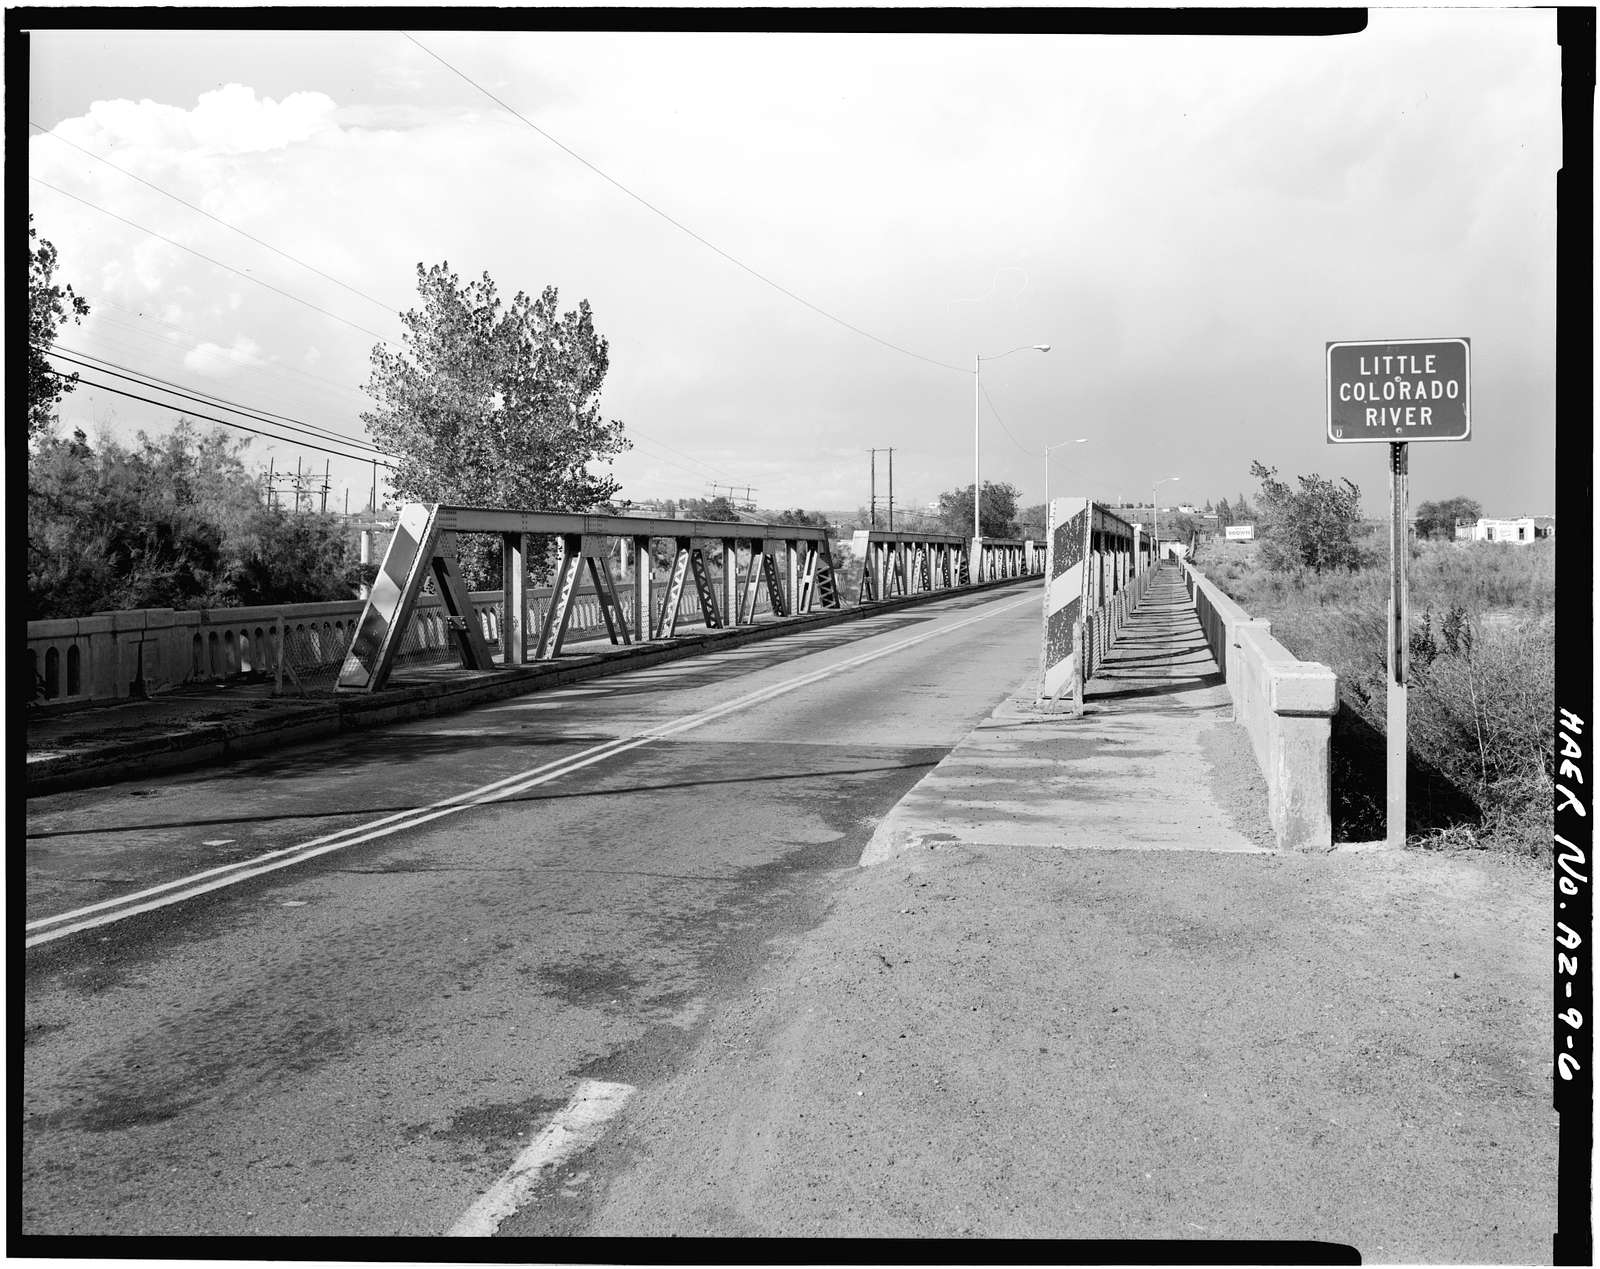 Holbrook Bridge, Spanning Little Colorado River at AZ 77, Holbrook, Navajo County, AZ